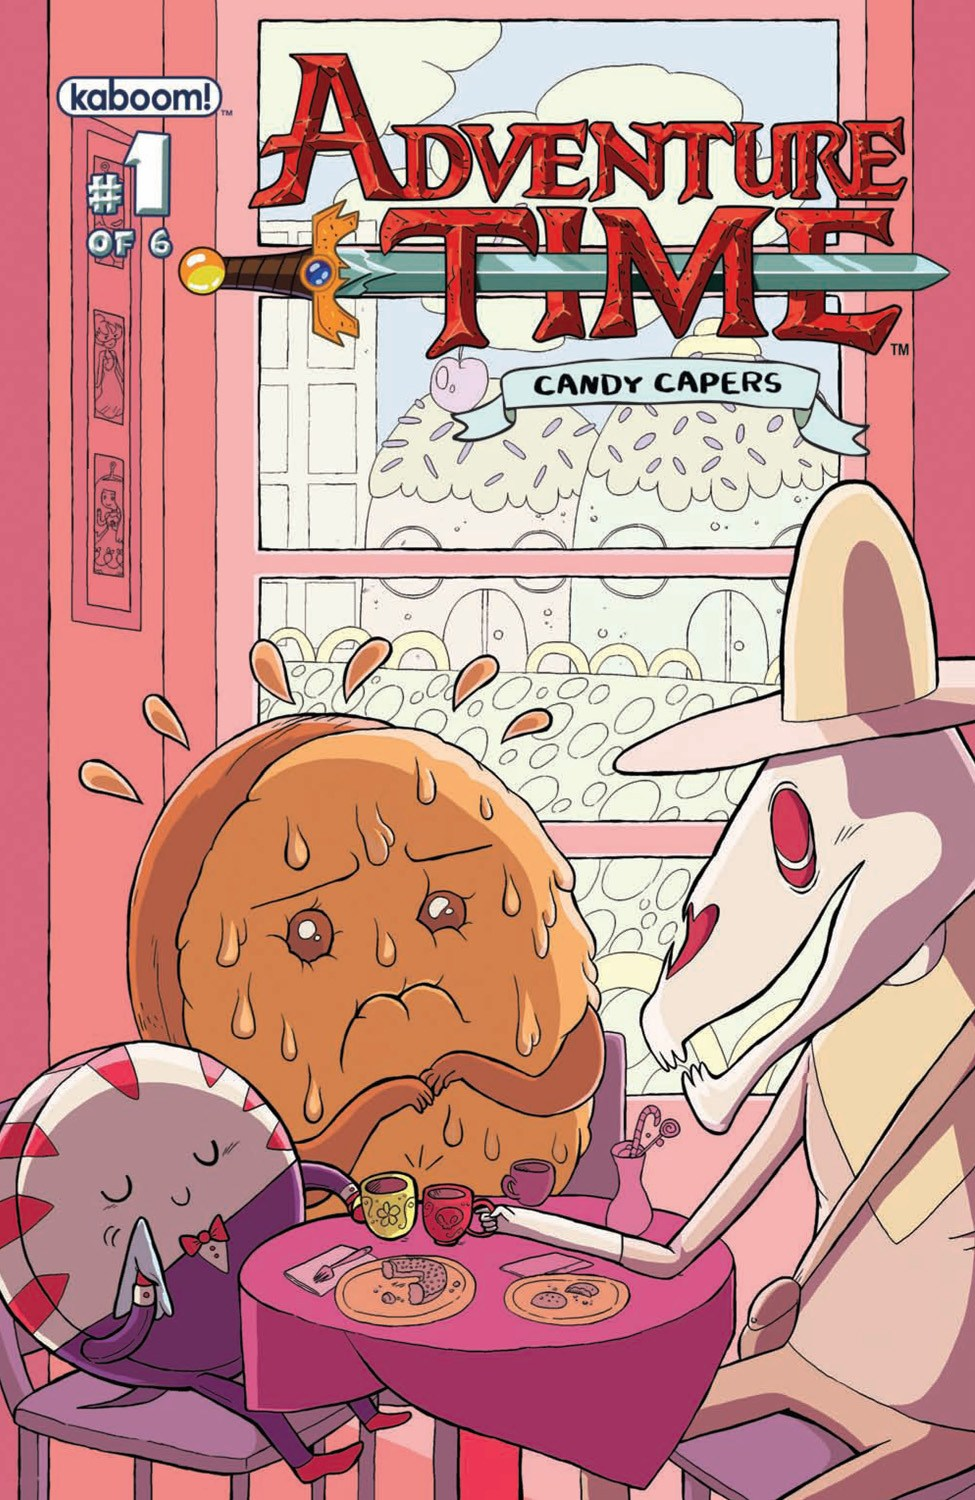 Cover for Adventure Time: Candy Capers published by Boom